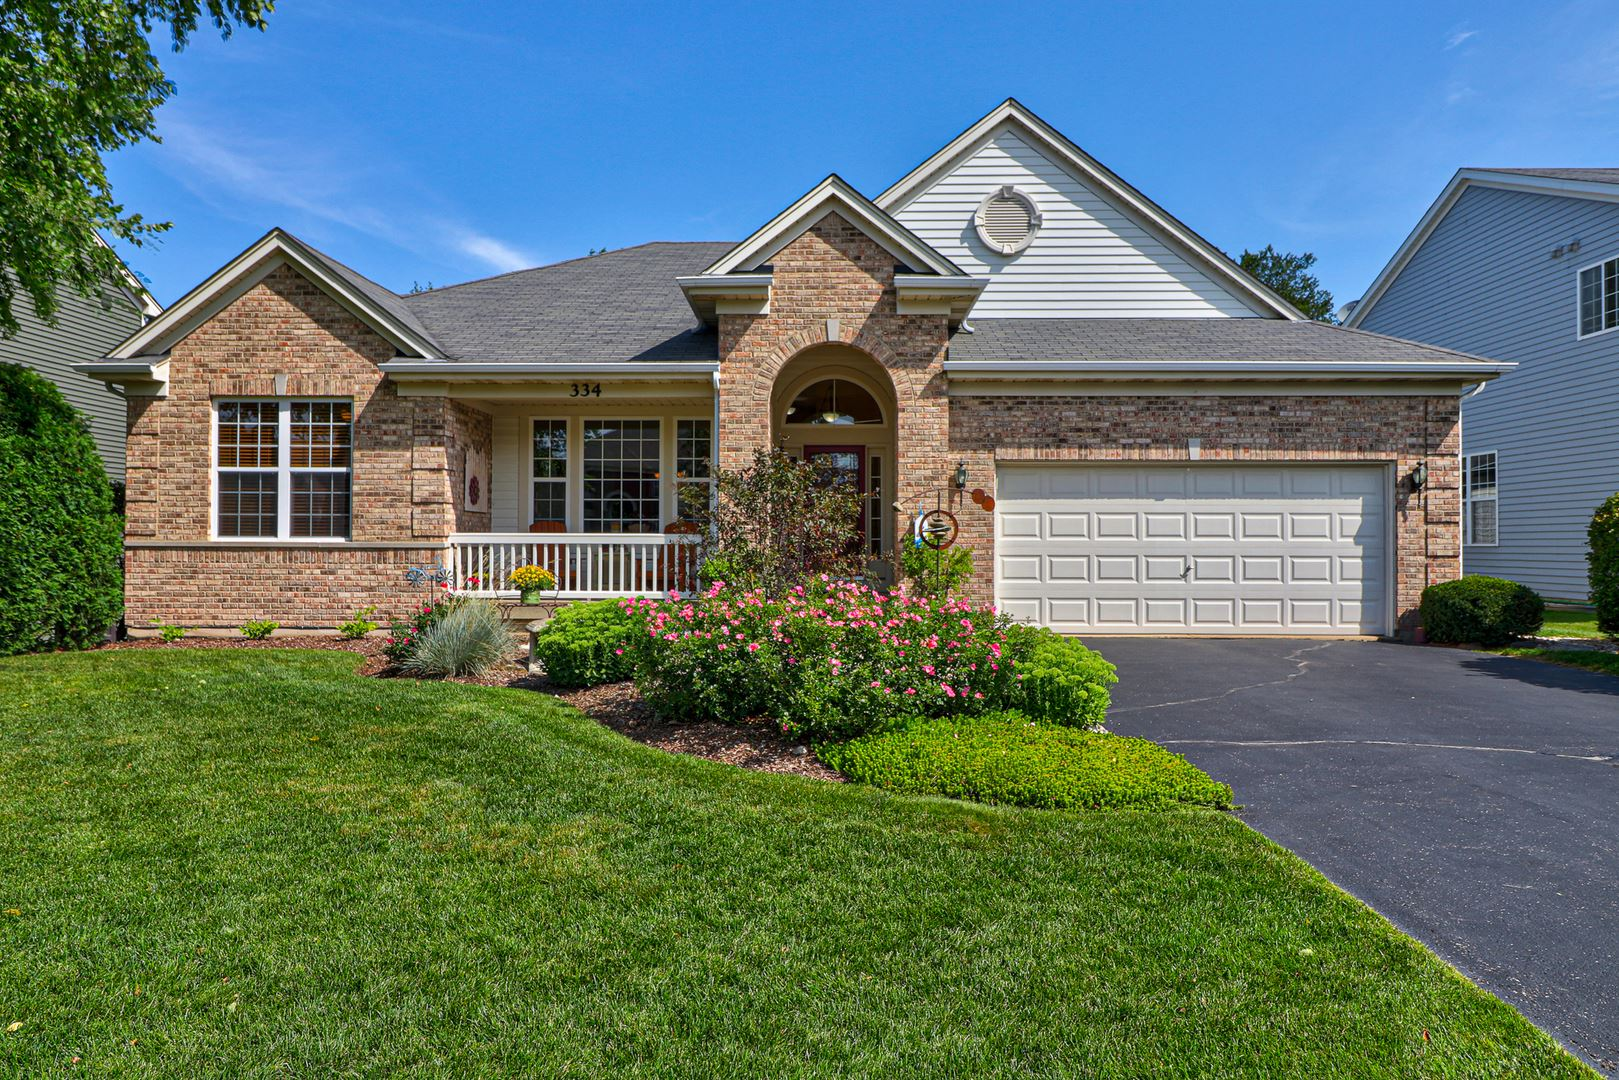 334 STERLING Circle, Cary, IL 60013 - #: 11188987